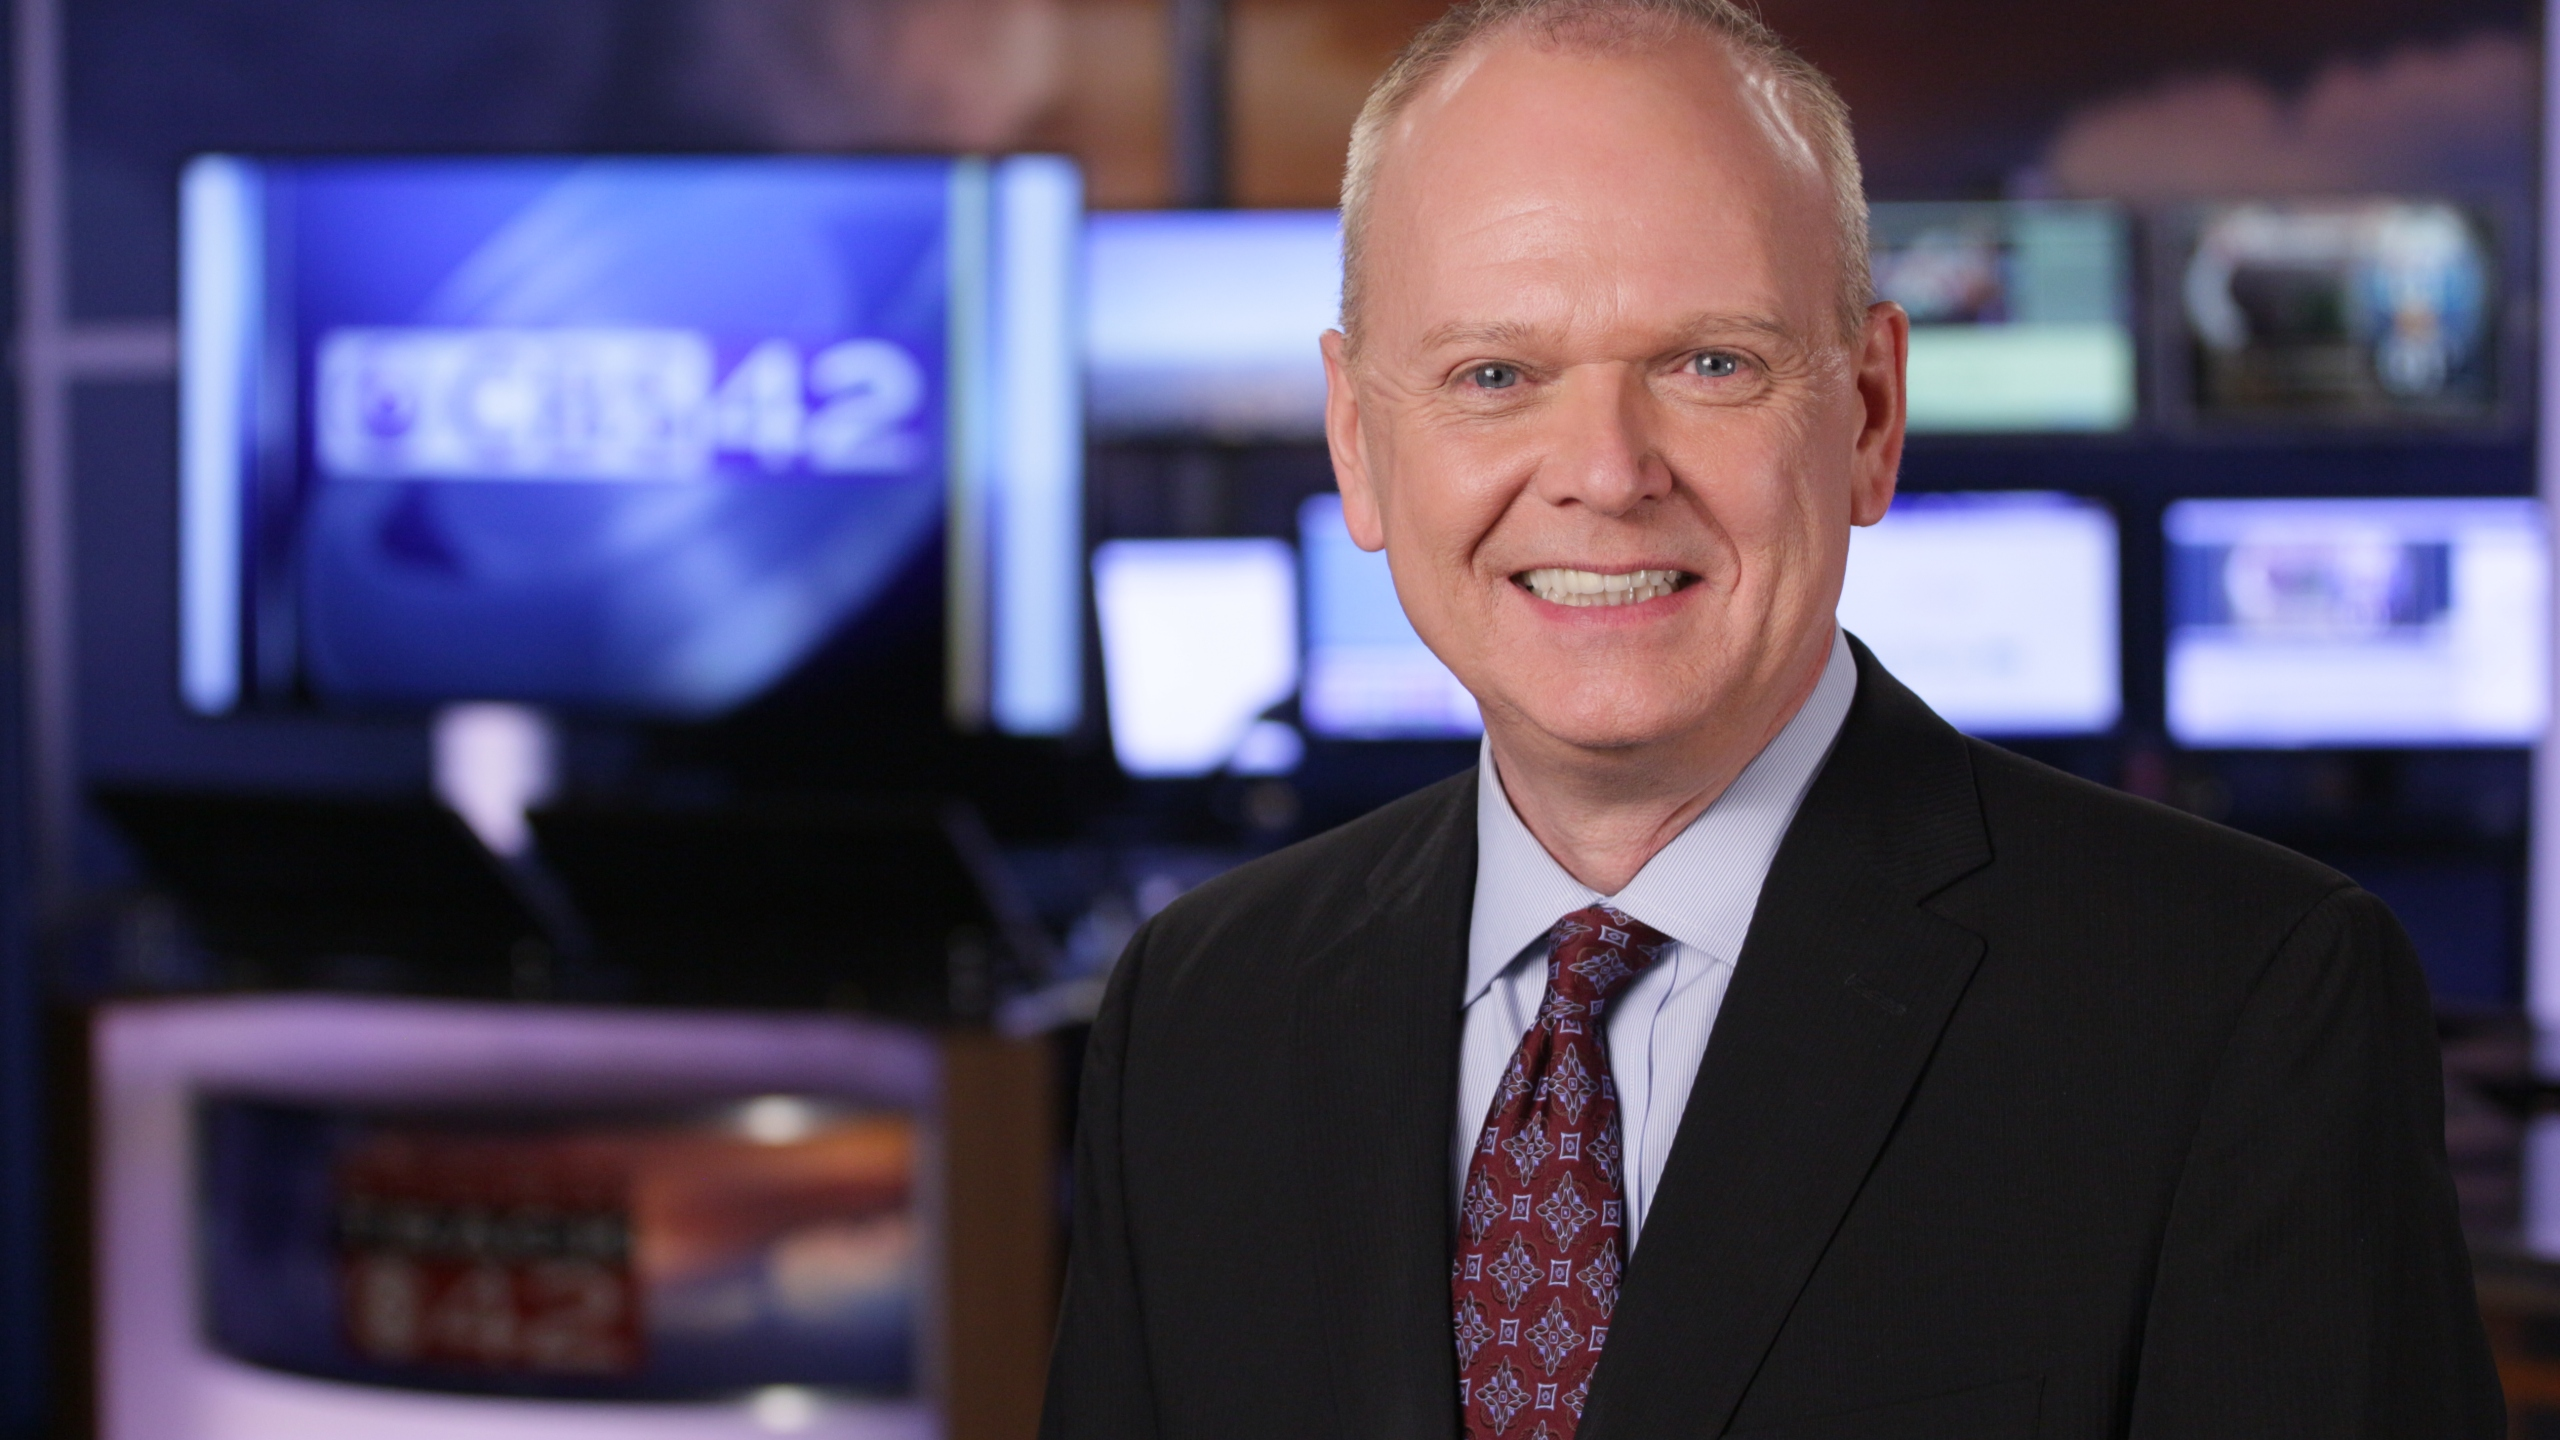 CBS 42's Jim Dunaway preparing for final show at anchor desk